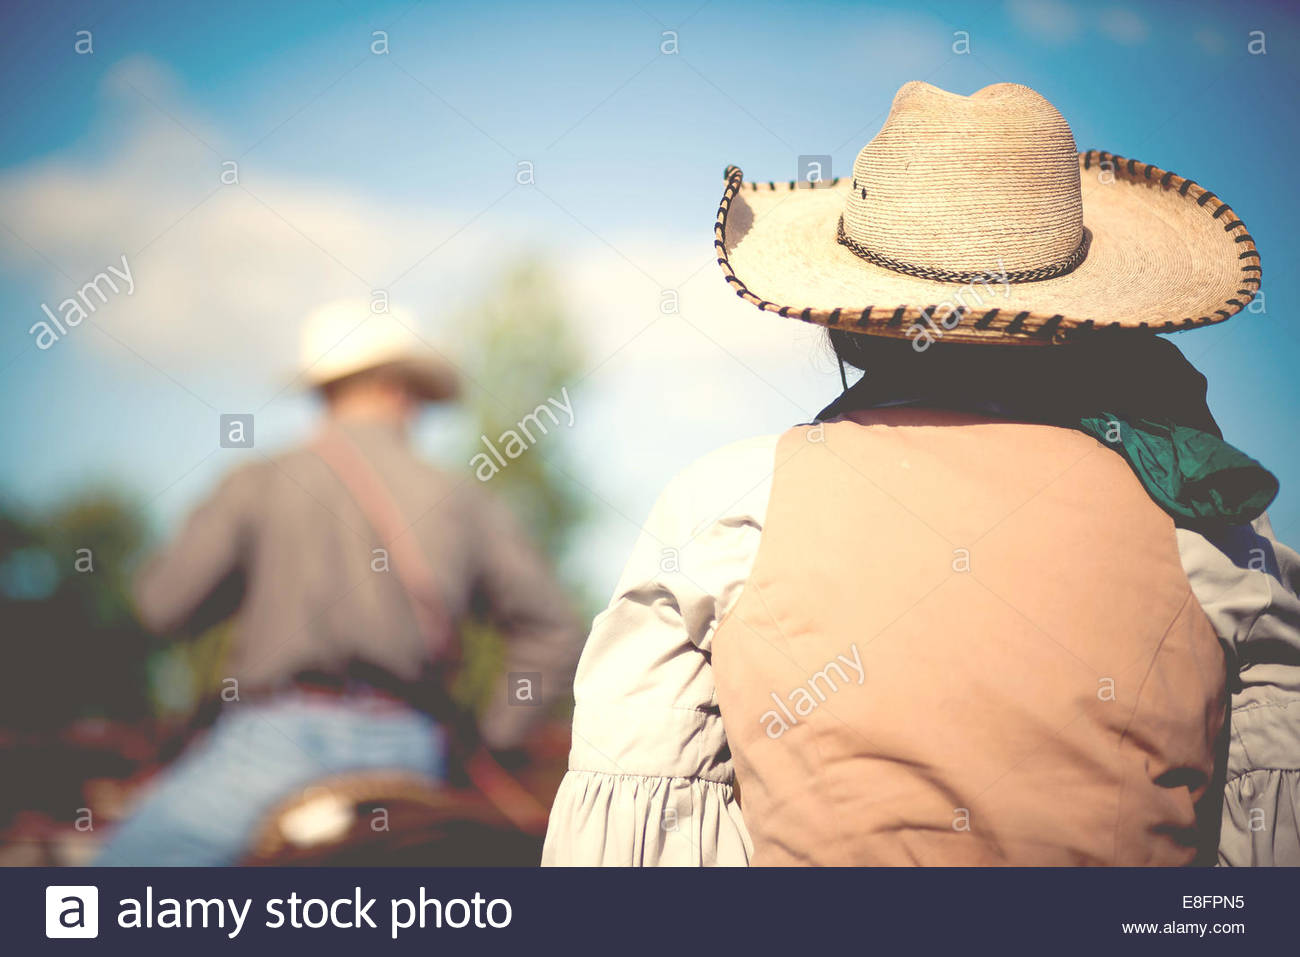 USA, Connecticut, Rear view of people horseback riding - Stock Image